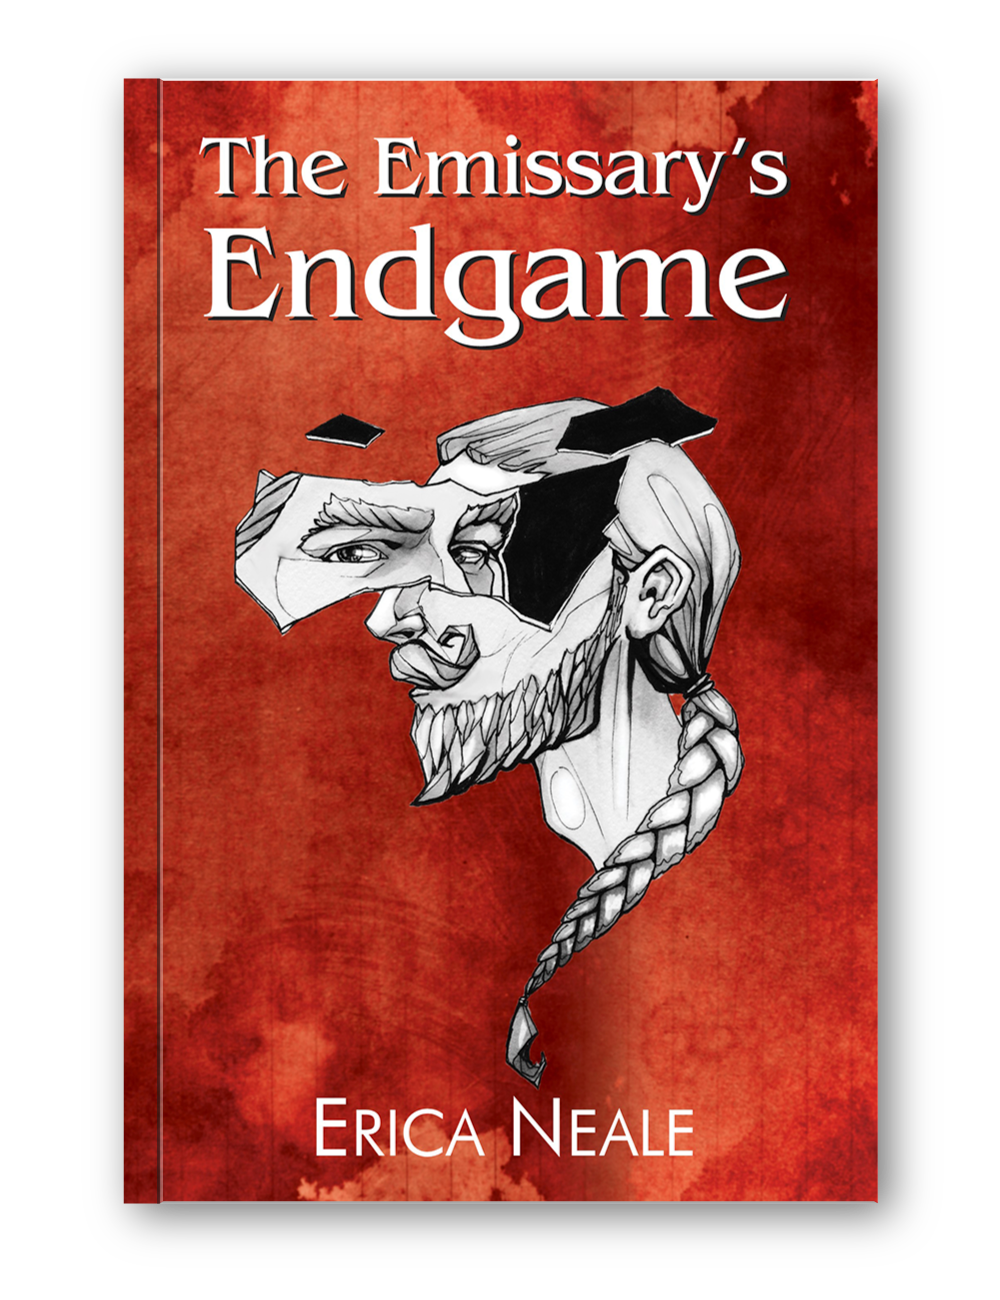 The Emissary's Endgame